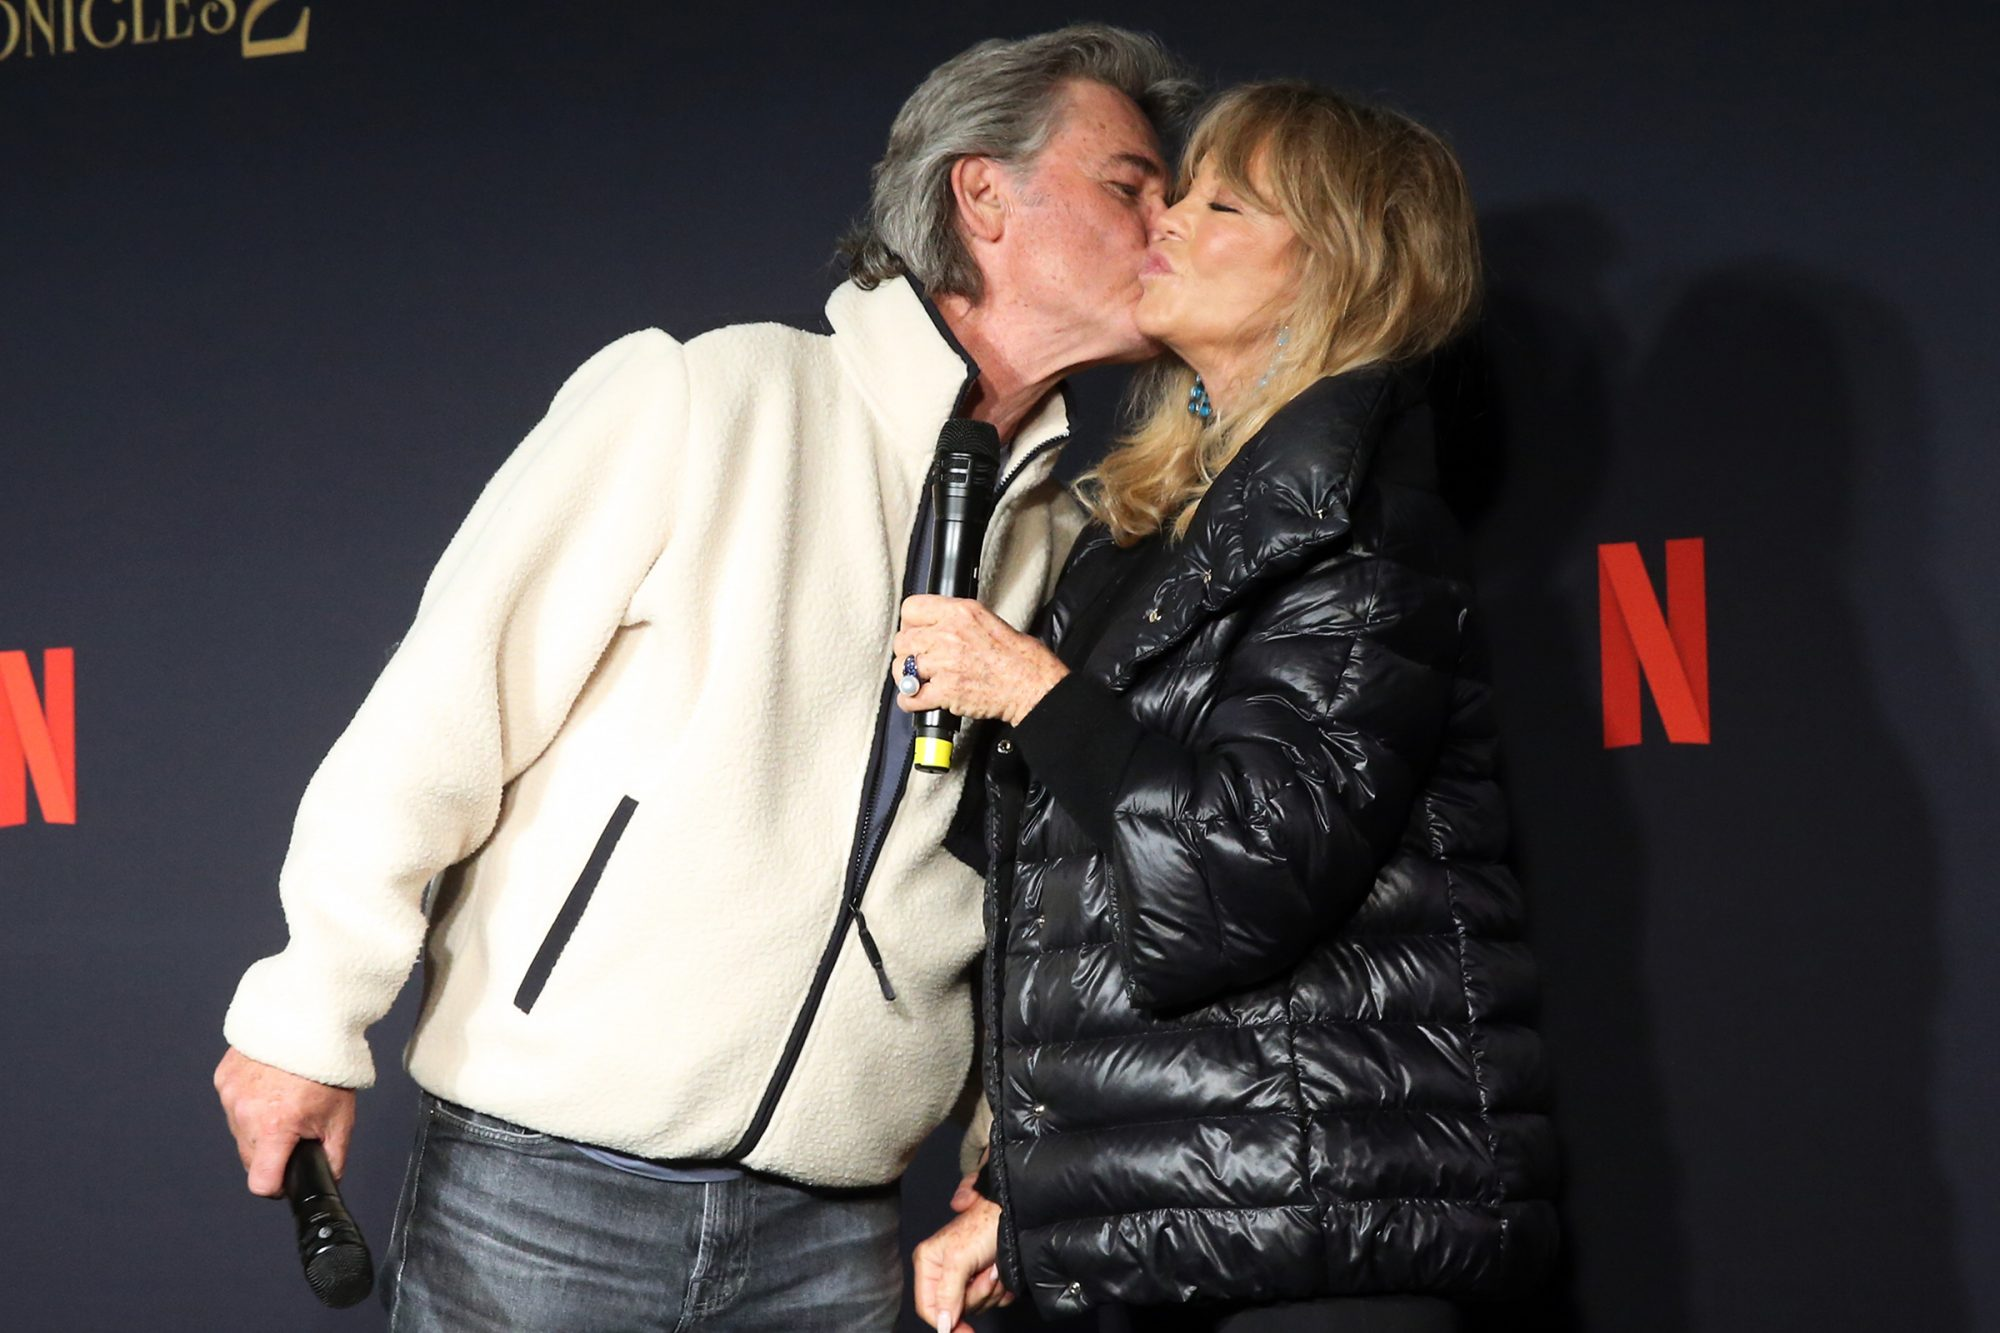 Kurt Russell Kisses Goldie Hawn At Premiere Ahead Of Her 75th Birthday People Com